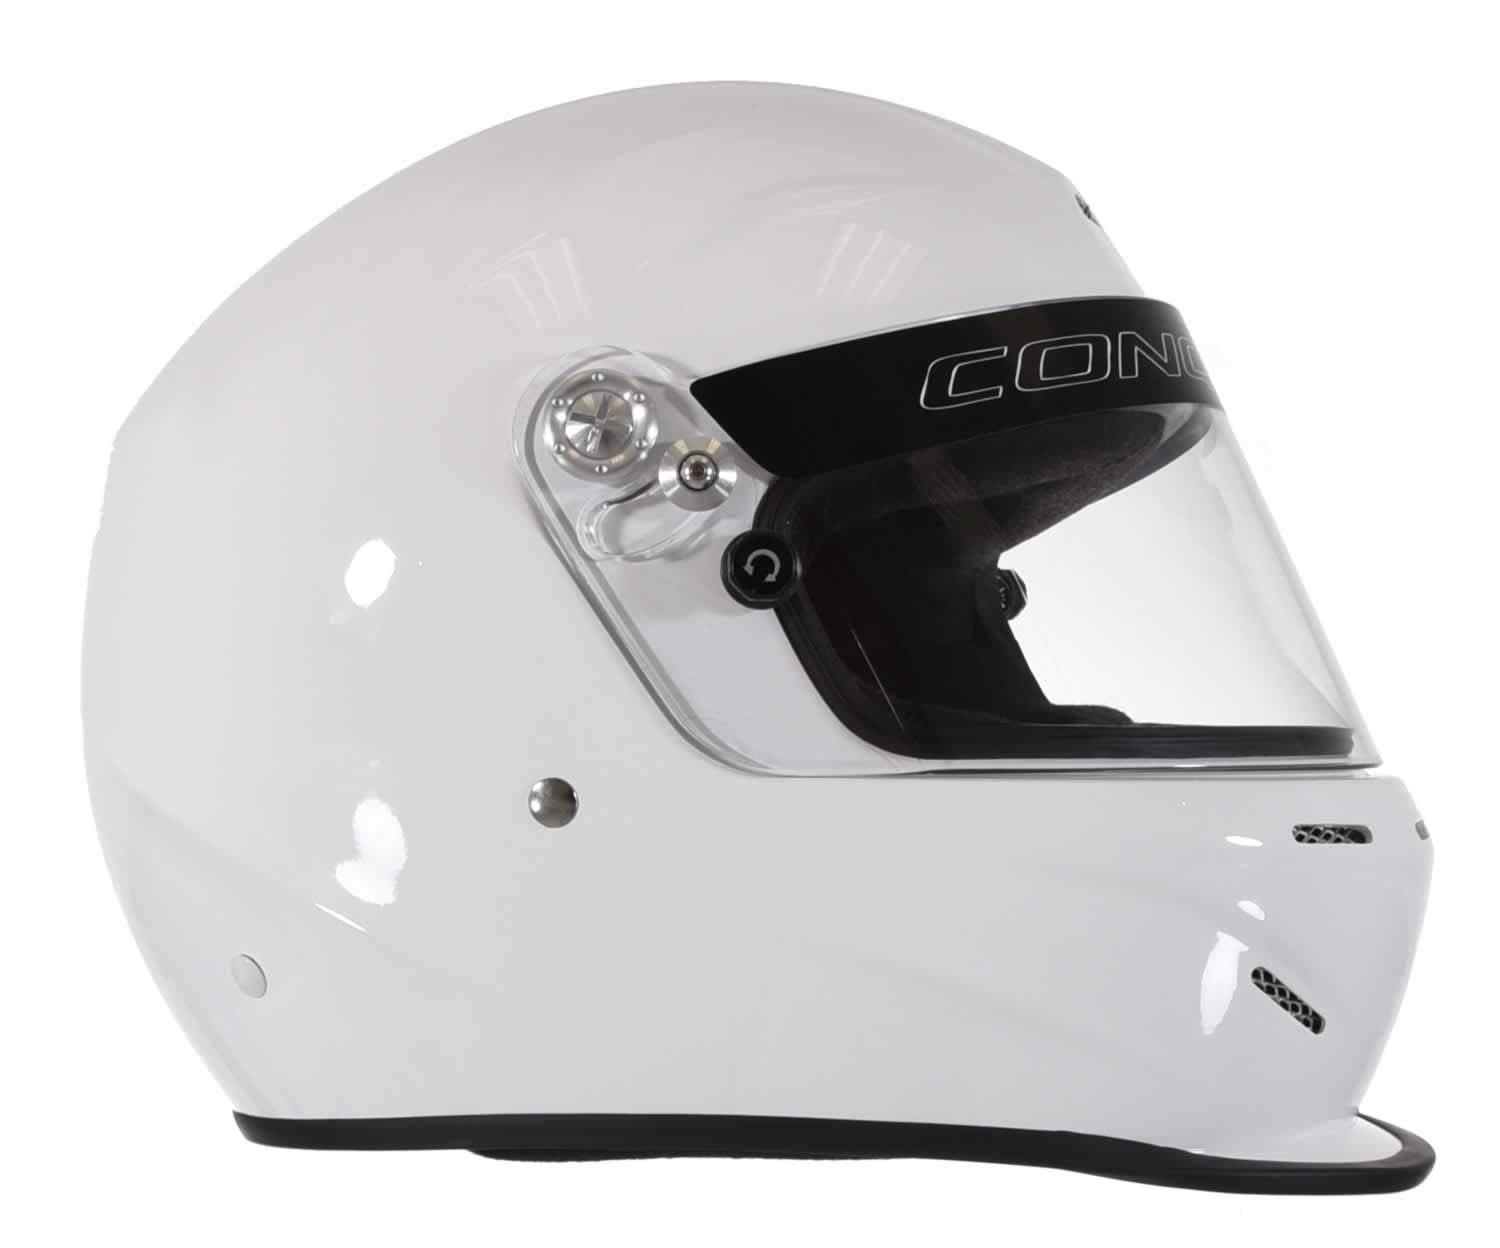 Conquer Snell SA2015 Aerodynamic Vented Full Face Auto Racing Helmet by Conquer (Image #4)